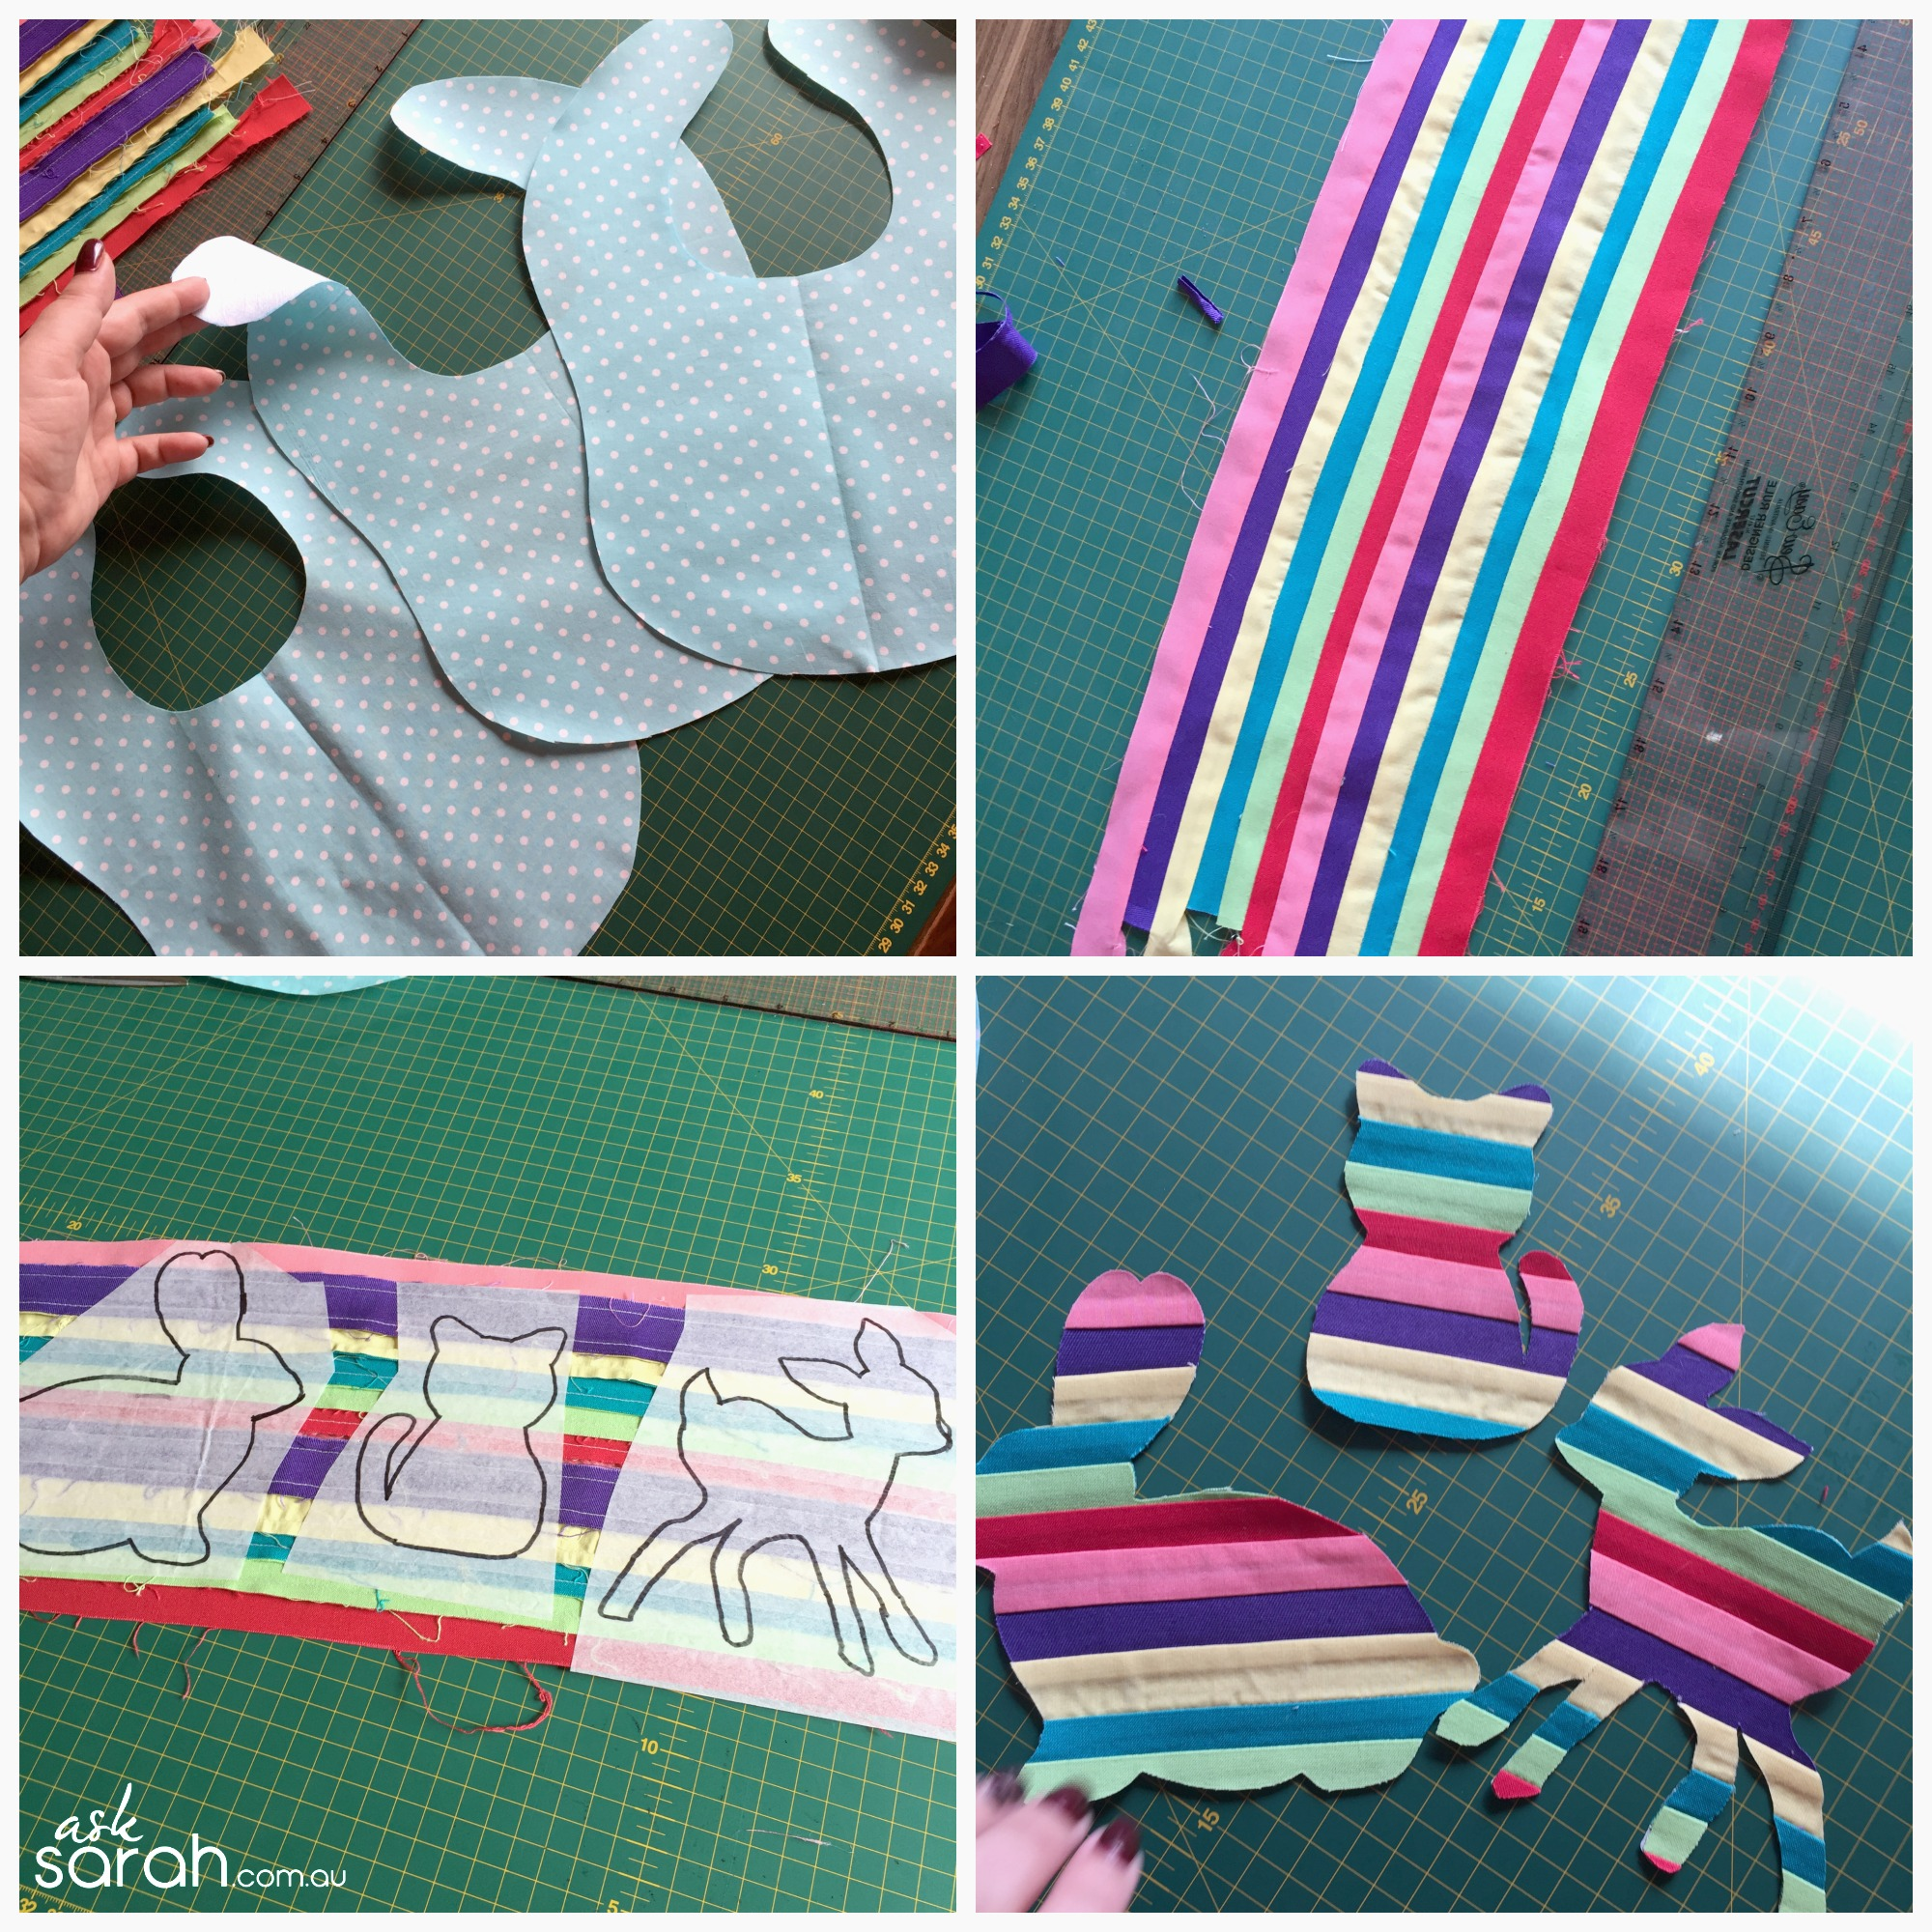 Sew: Bright Bunny Blanket & Baby Bibs {Tutorial & Pattern Links included}